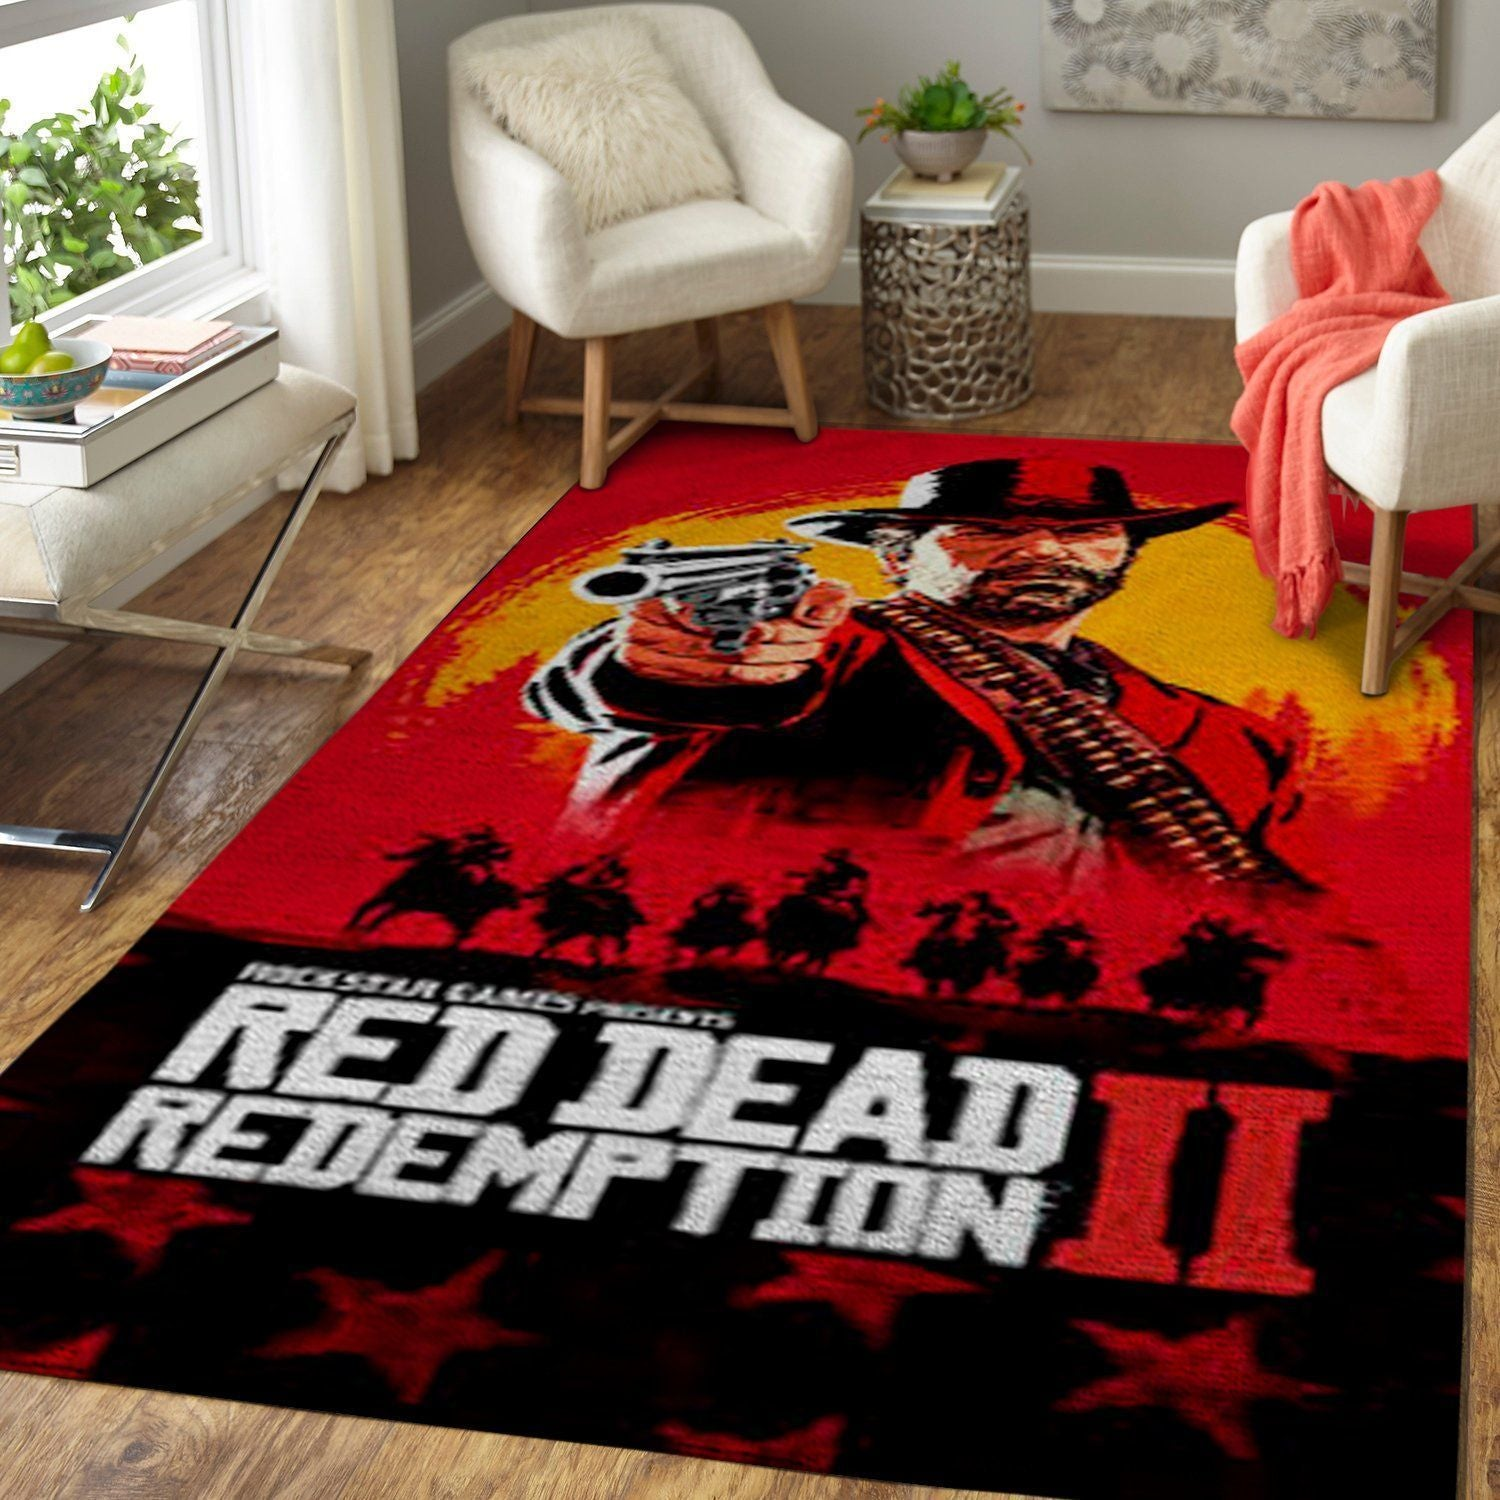 Red Dead Redemption Area Rug / Gaming GFD 190916